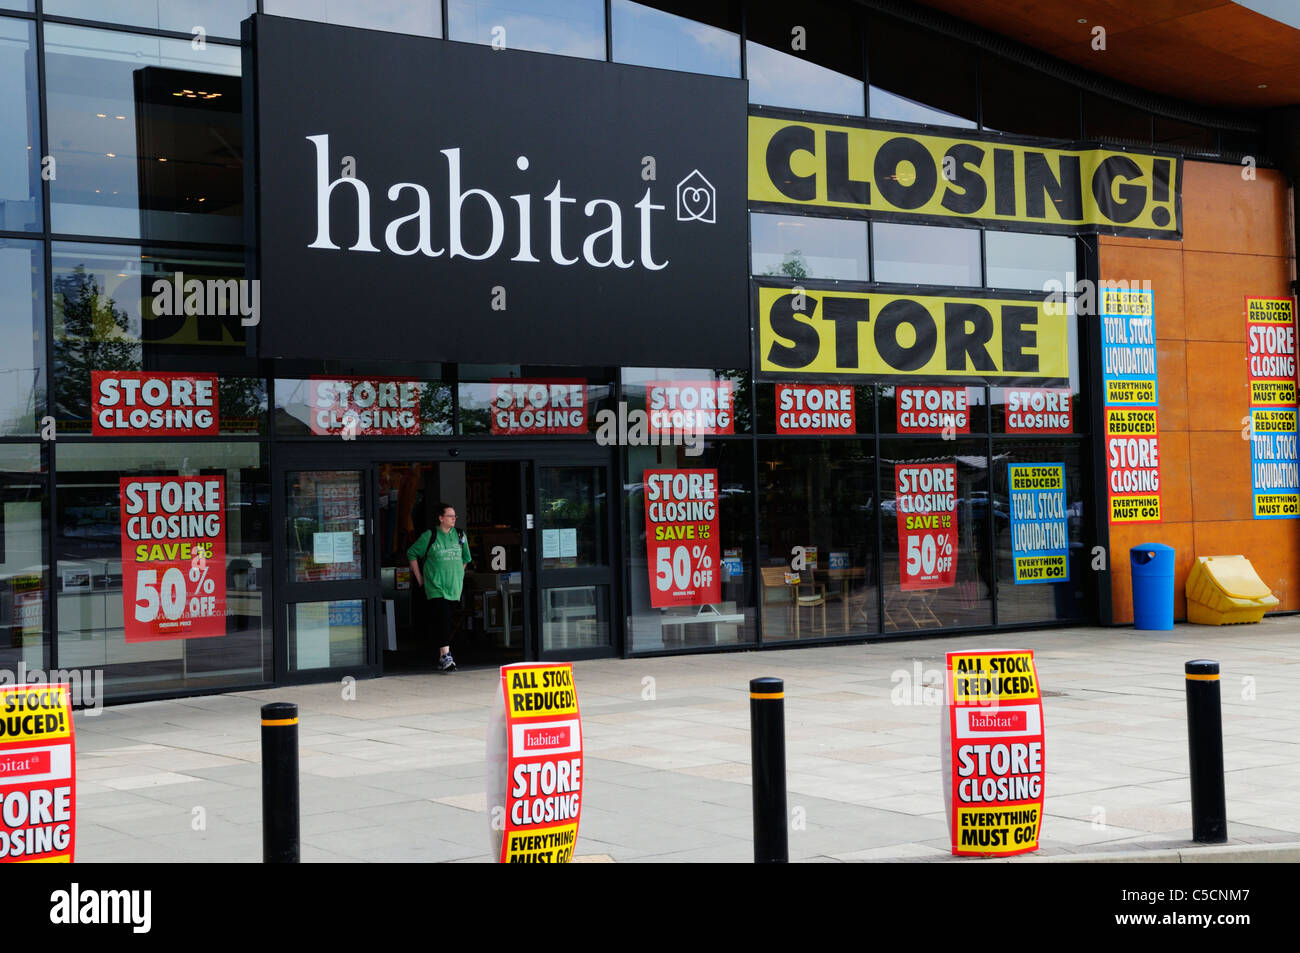 Habitat Store Closing Down, Cambridge, England, UK - Stock Image